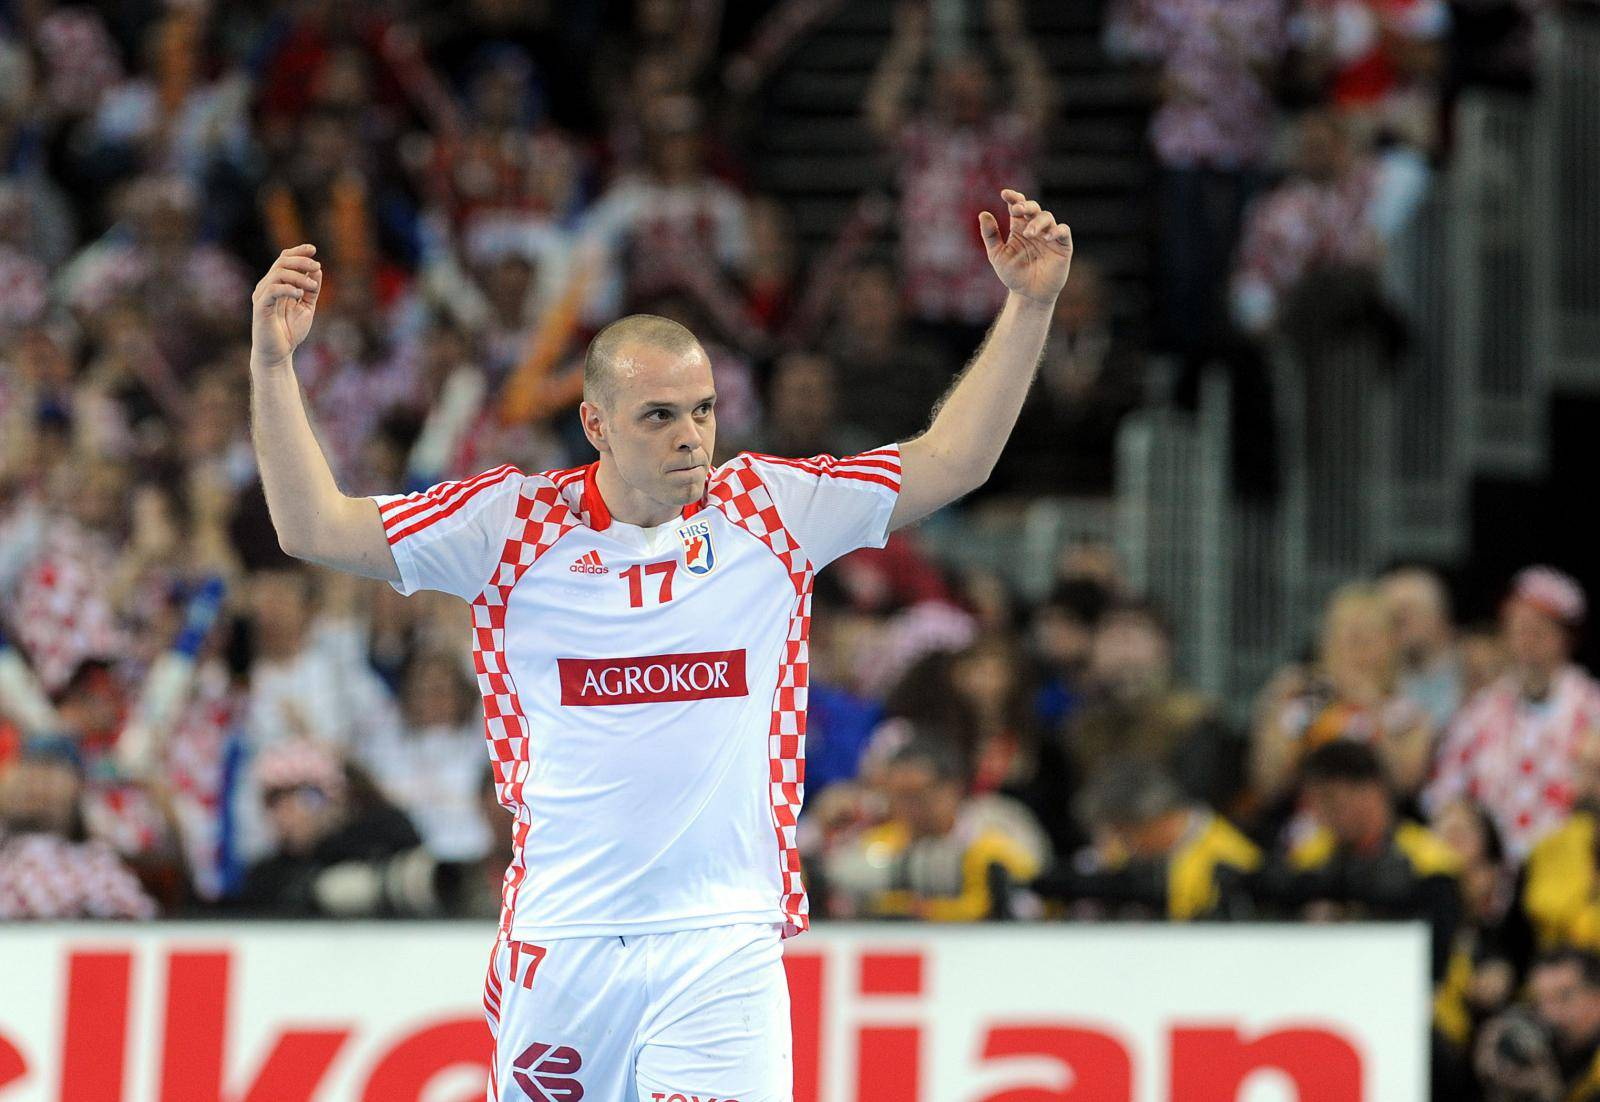 Men's World Handball Championship 2009 - Group I - France - Croatia